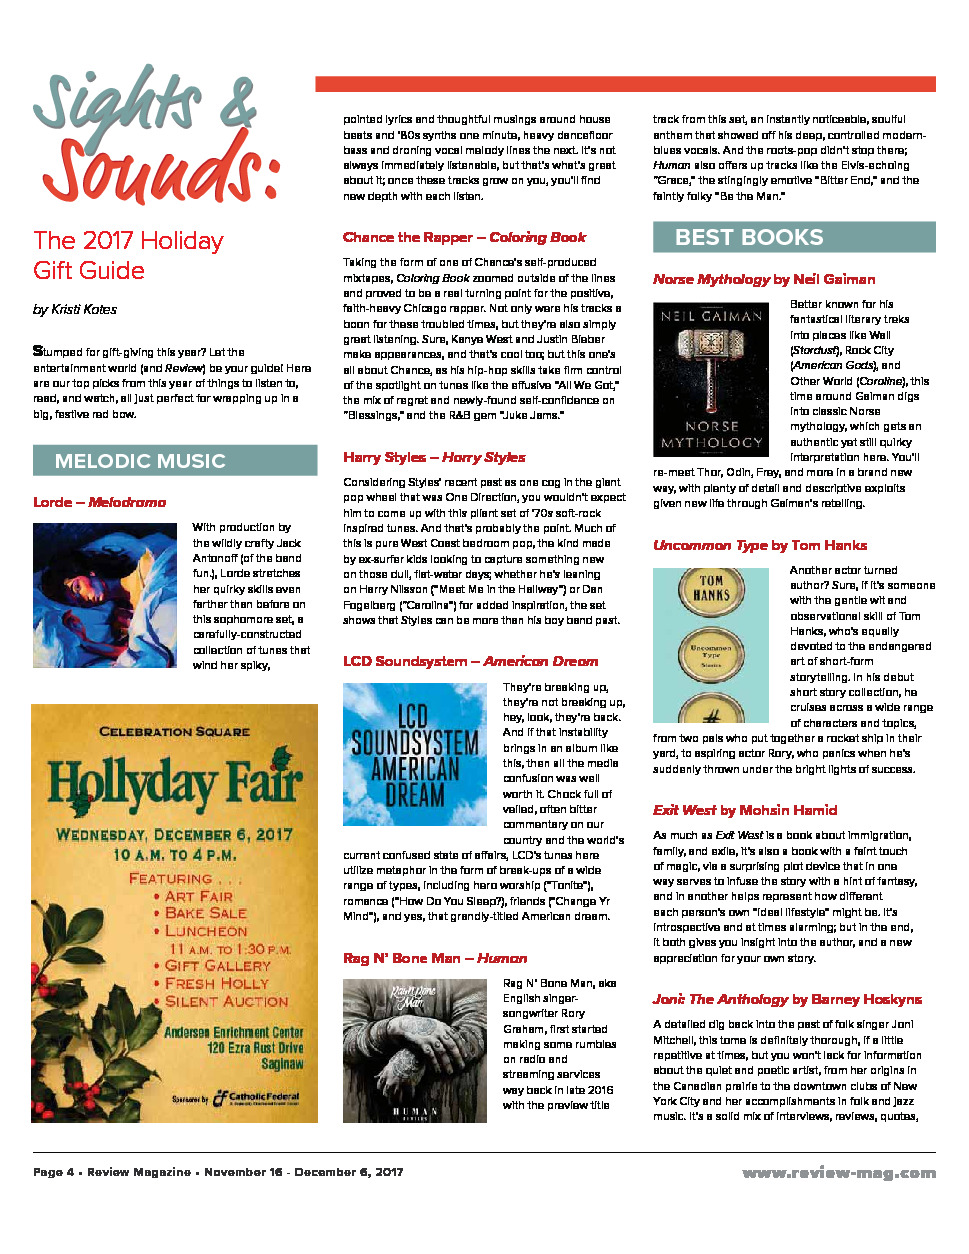 Issue 853 | The Review - Mid-Michigan's Leading Publication of News